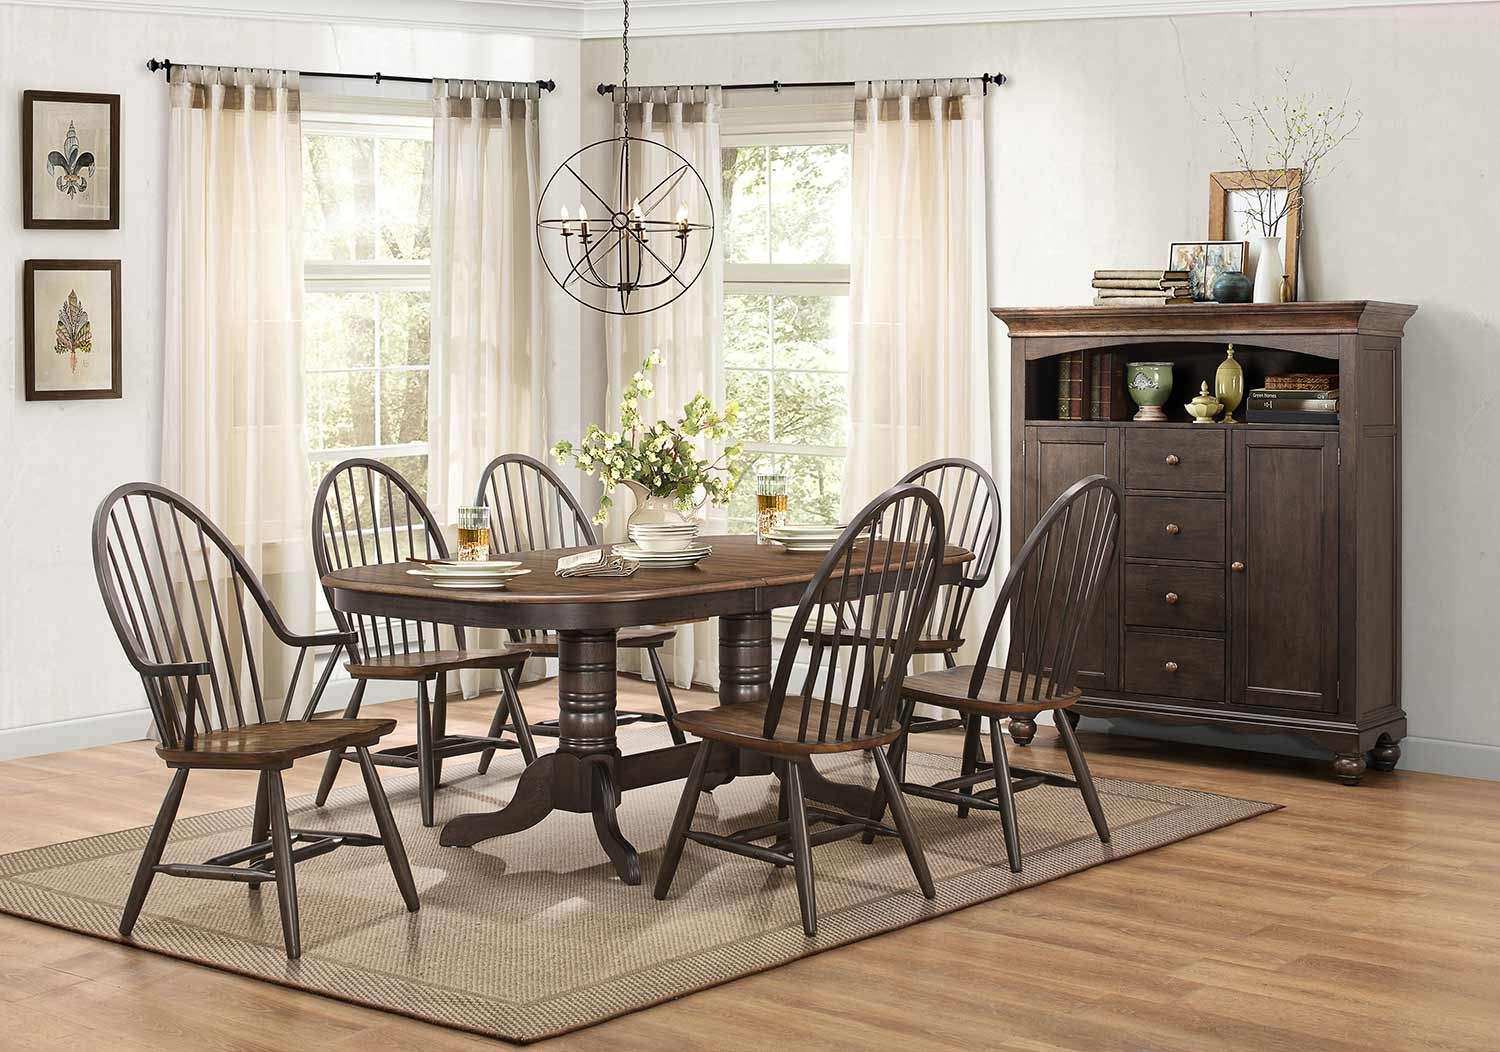 Homelegance Cline Dining Set - Two tone finish